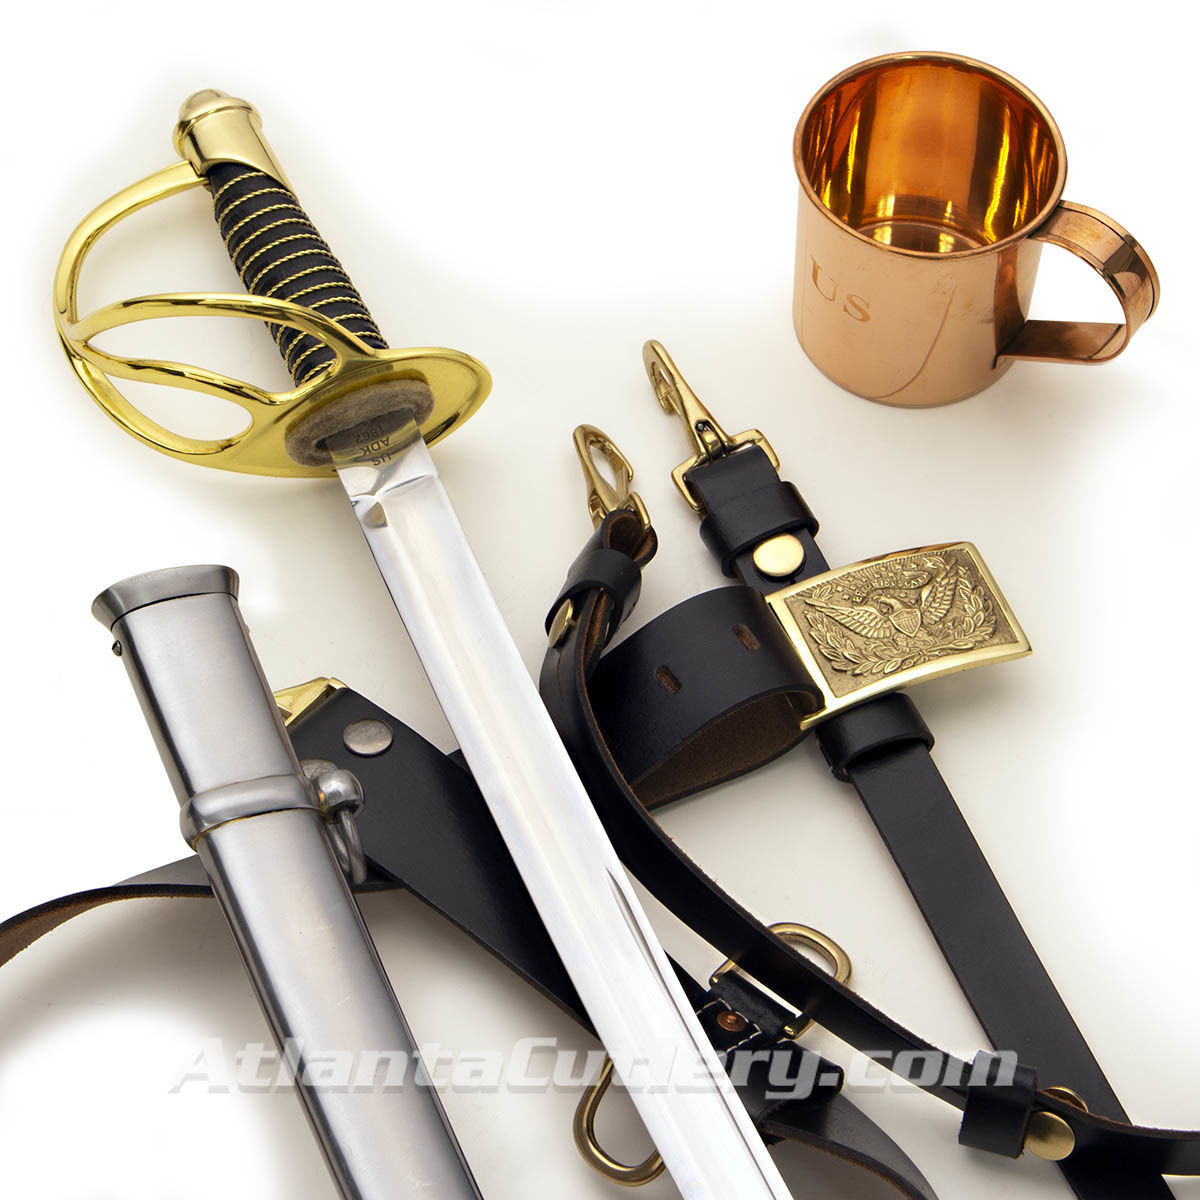 The Union Kit with 1860 Light Cavalry Union Saber and scabbard, sword belt and engraved copper coffee mug